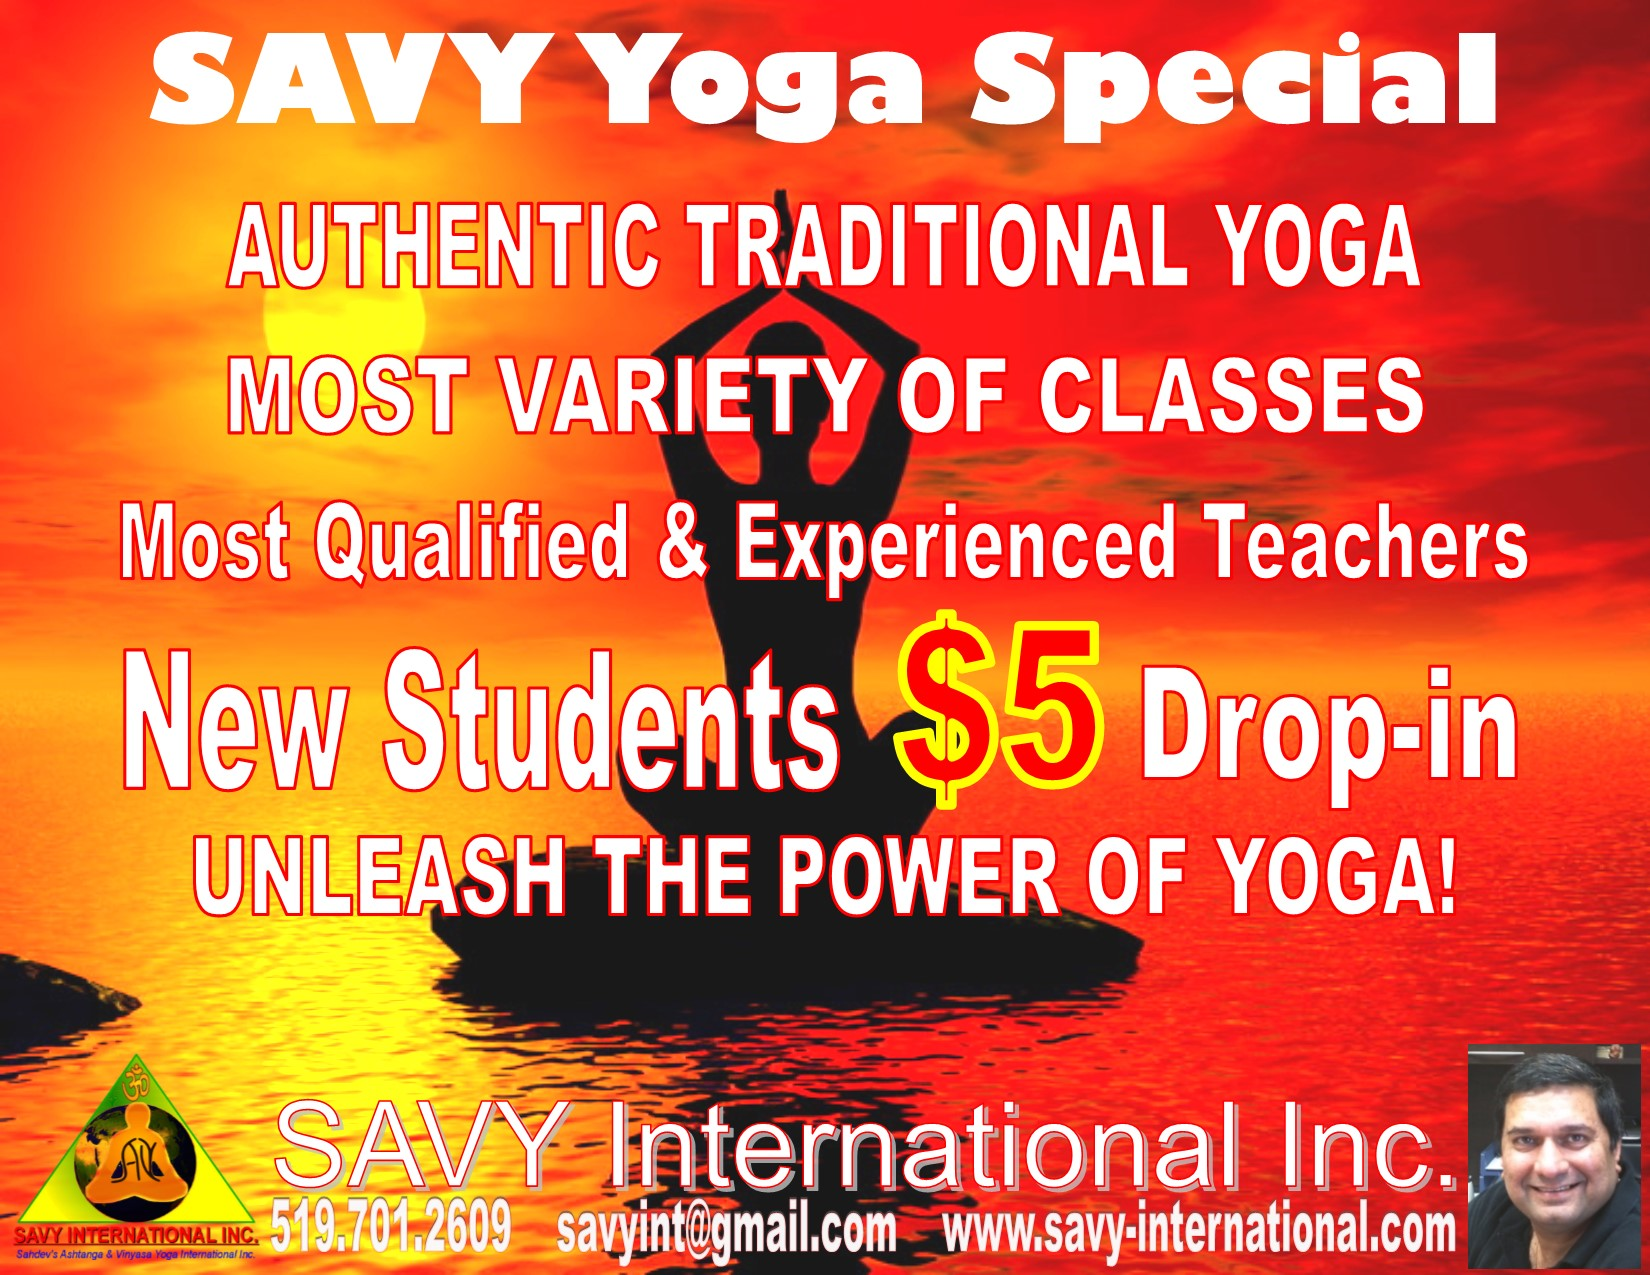 Introductory Yoga Pass - $5 Per Class